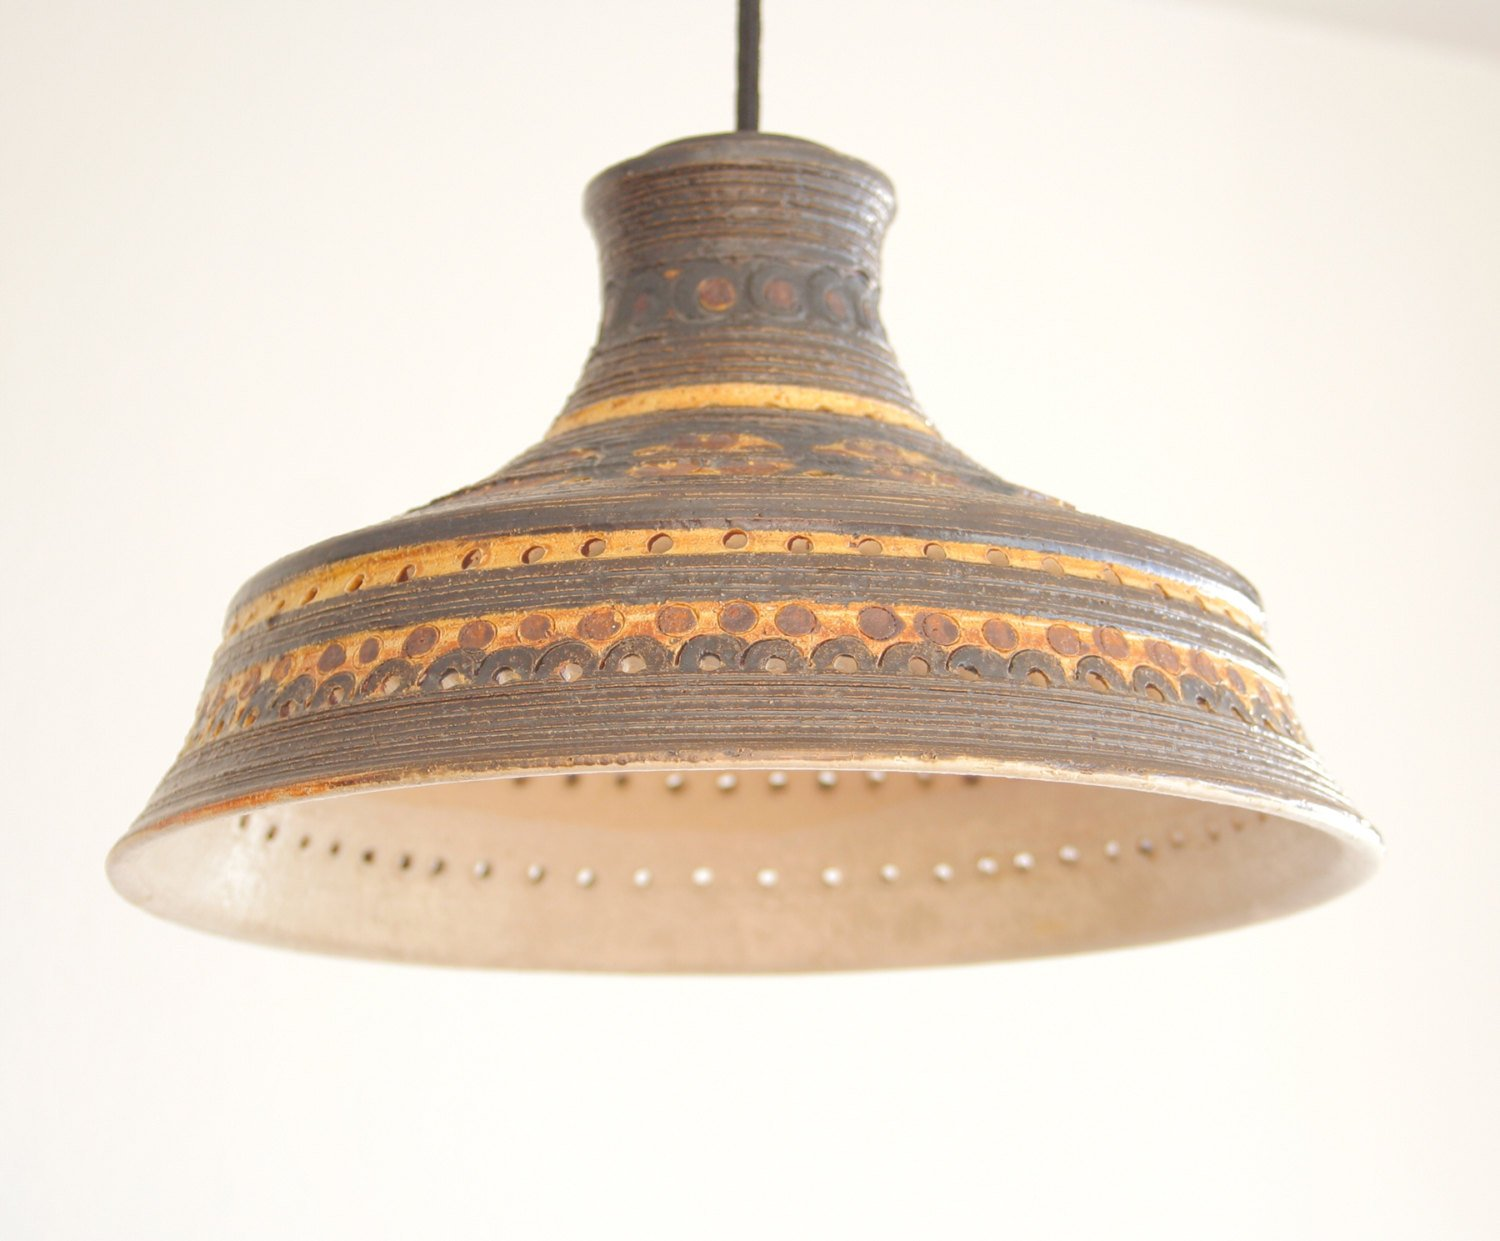 JETTE HELLERØE Heart Decorated Ceramic Pendant Light - Mollaris.com